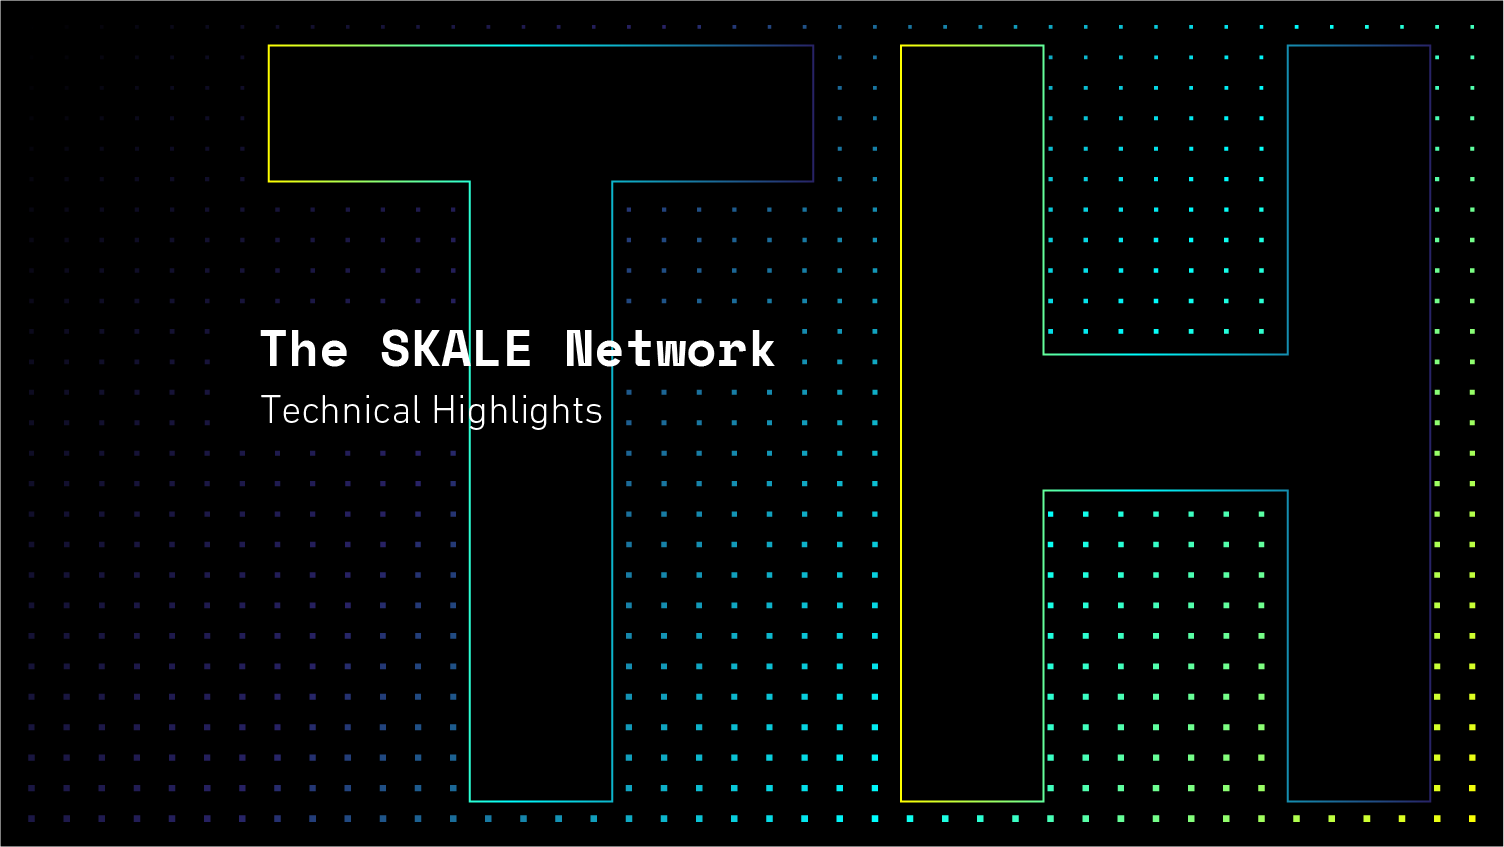 SKALE Network - Technical Highlights